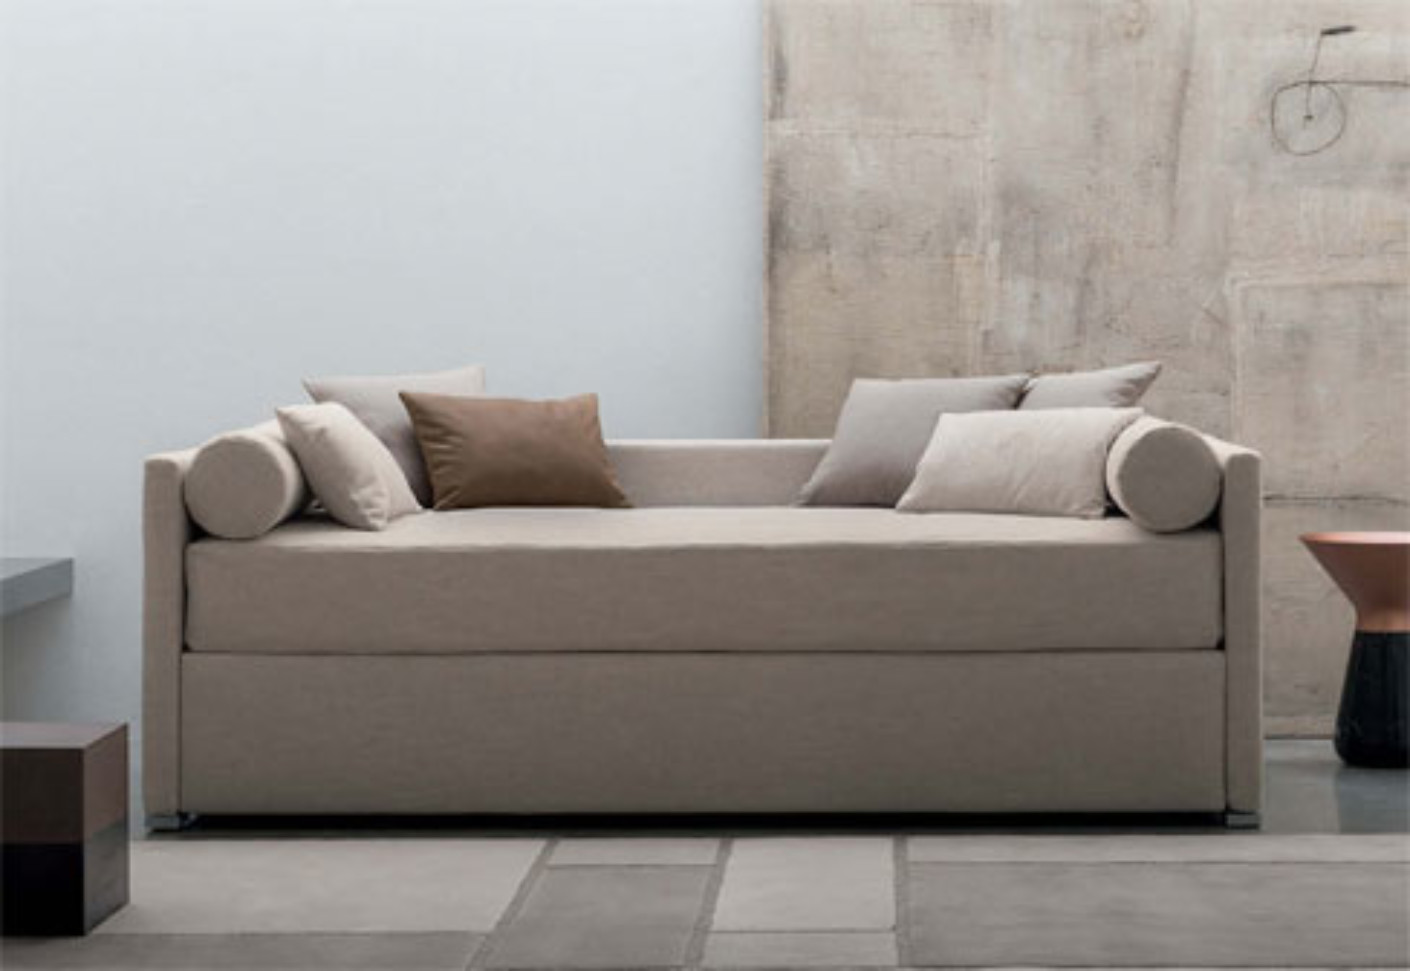 Letti flou a verona : Biss e with backrest by flou stylepark